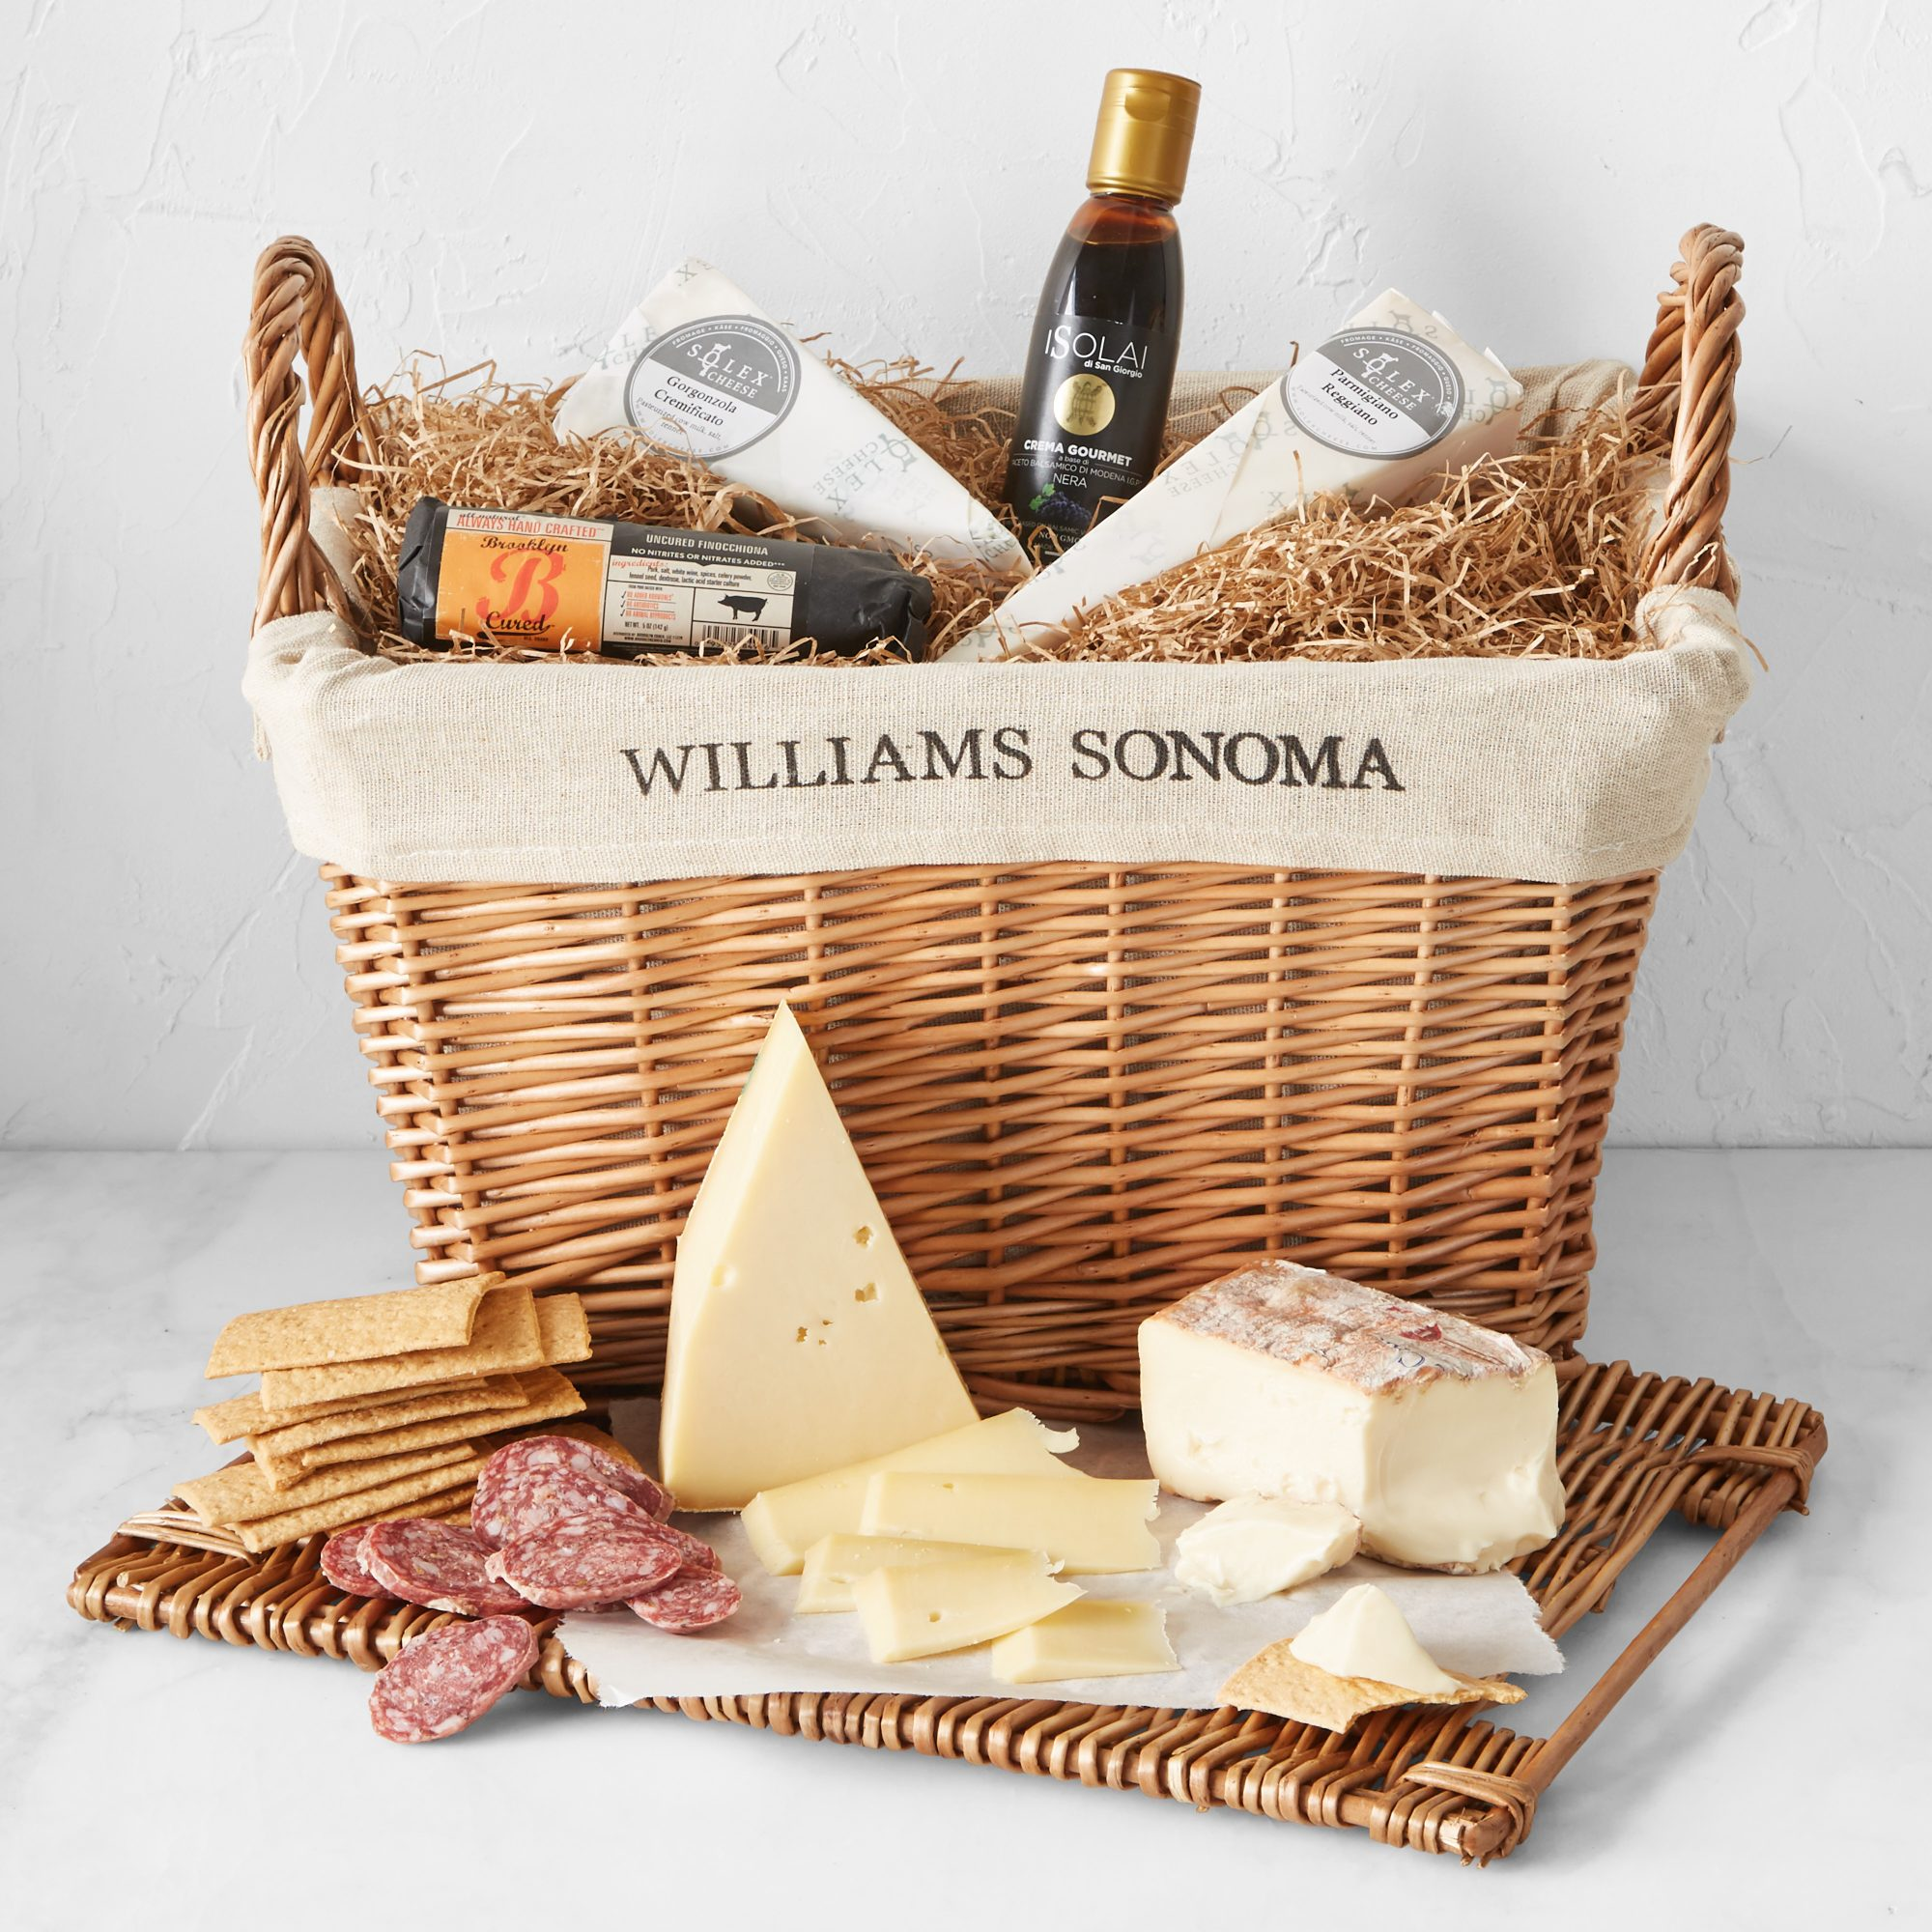 Williams Sonoma Savory Hamper with meats, cheeses, and crackers